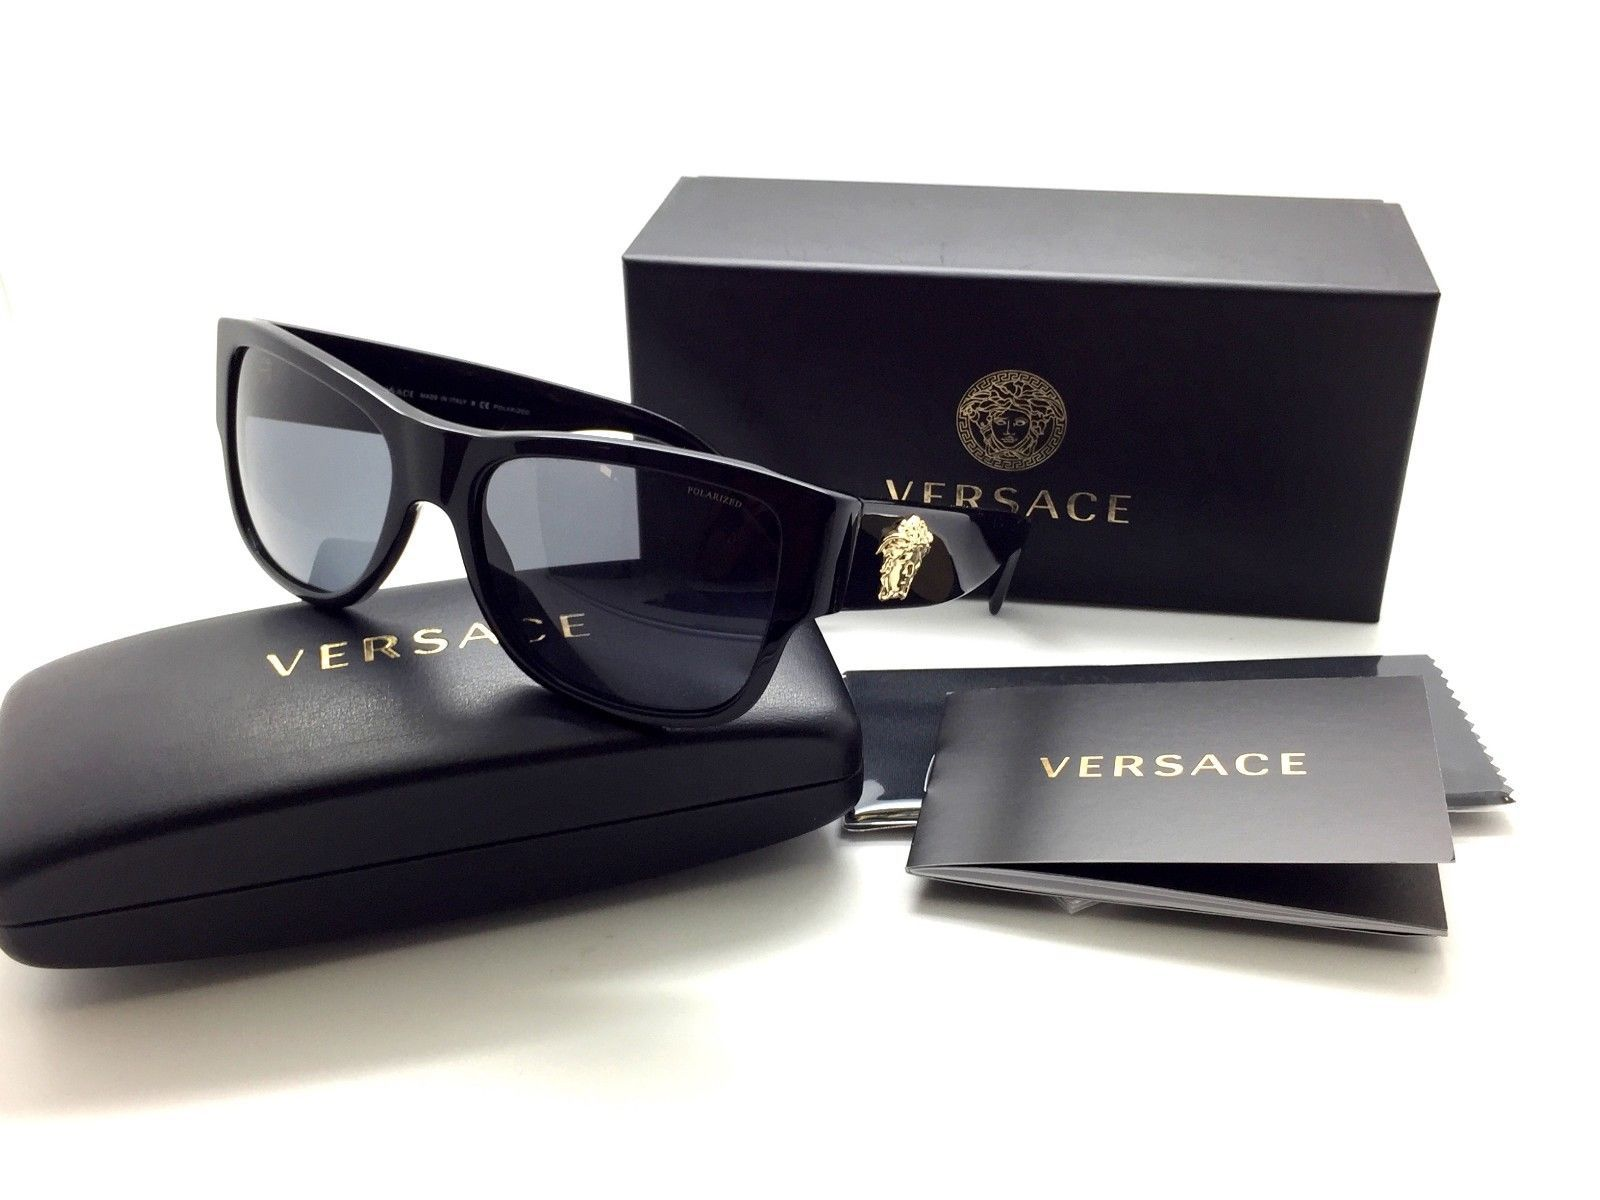 935581ea0ee 57. 57. VERSACE POLARIZED Sunglasses VE MOD 4275 GB1 87 58mm Black-Gold    Grey Lens